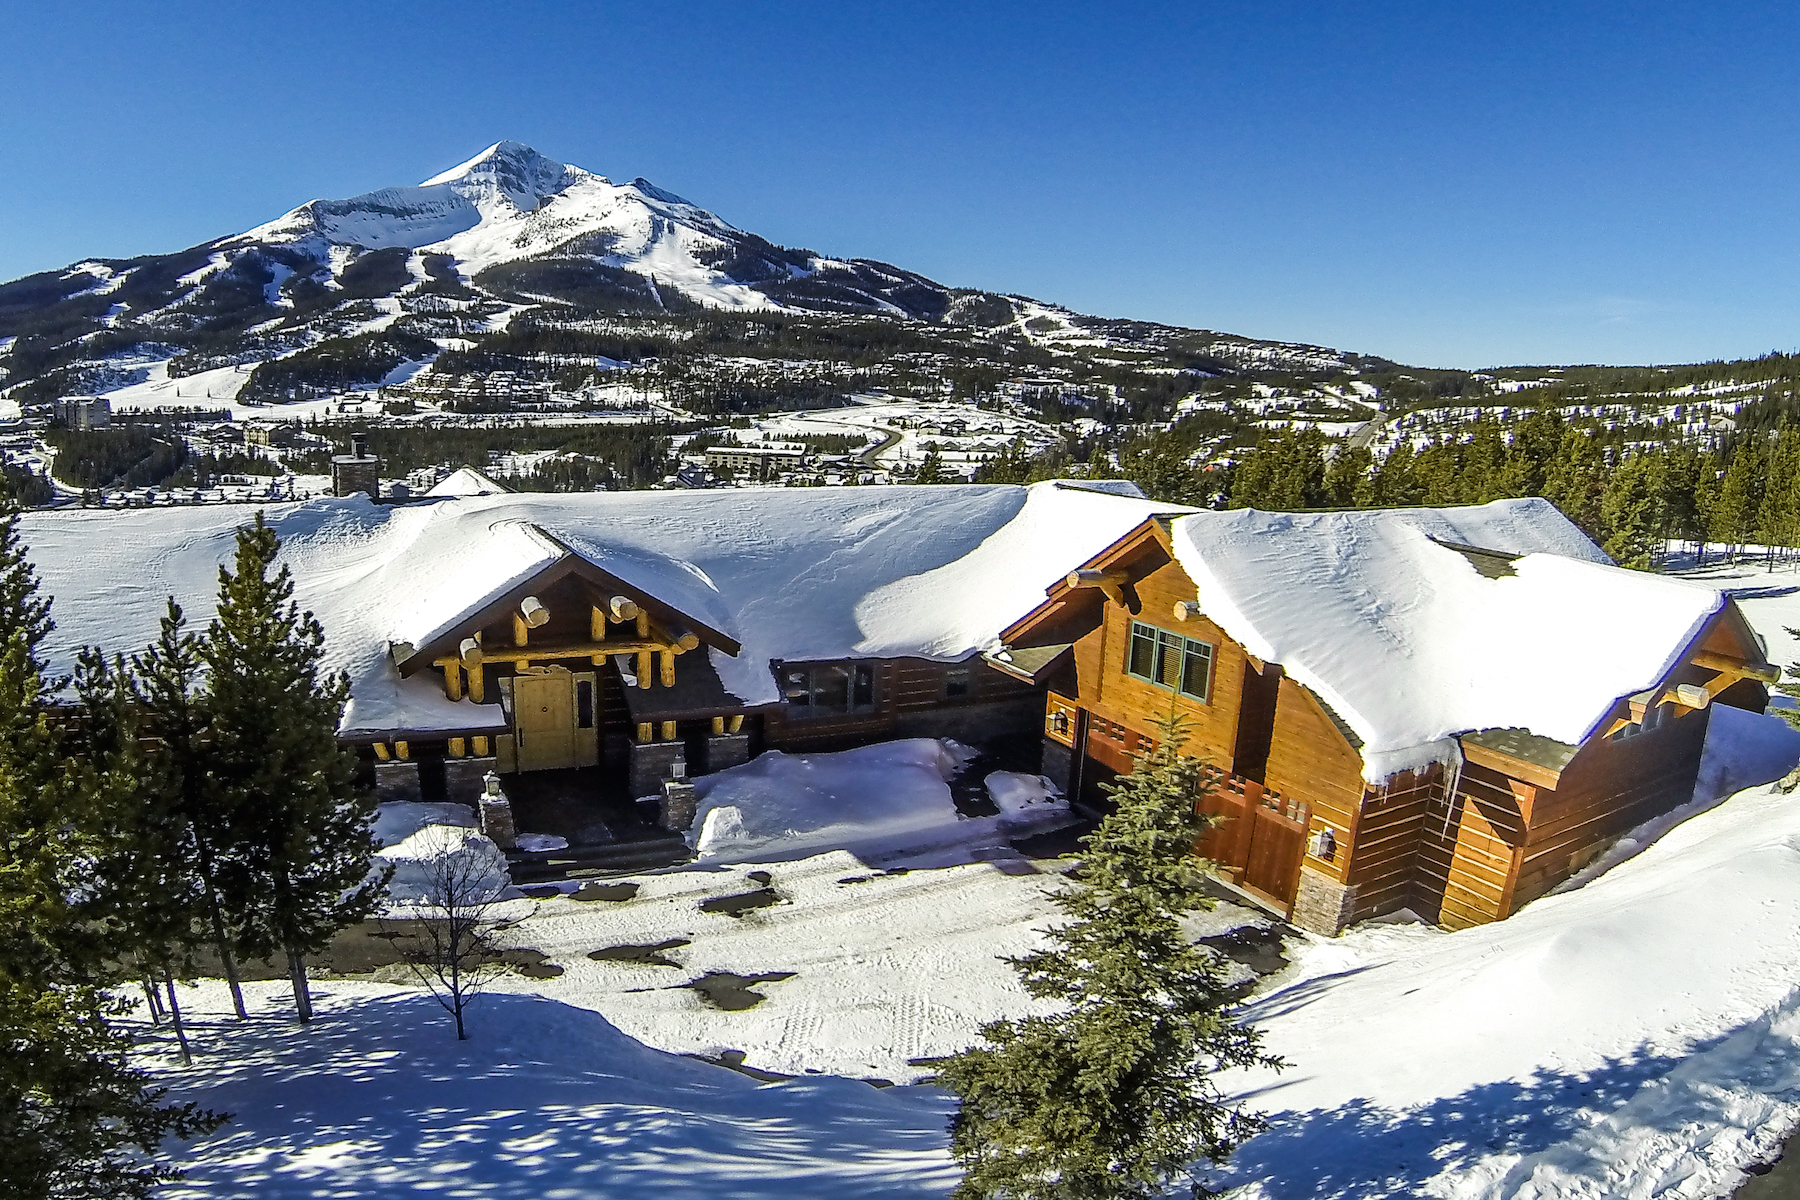 Single Family Home for Sale at Summit View Estate 34 Summit View Drive Big Sky, Montana, 59716 United States